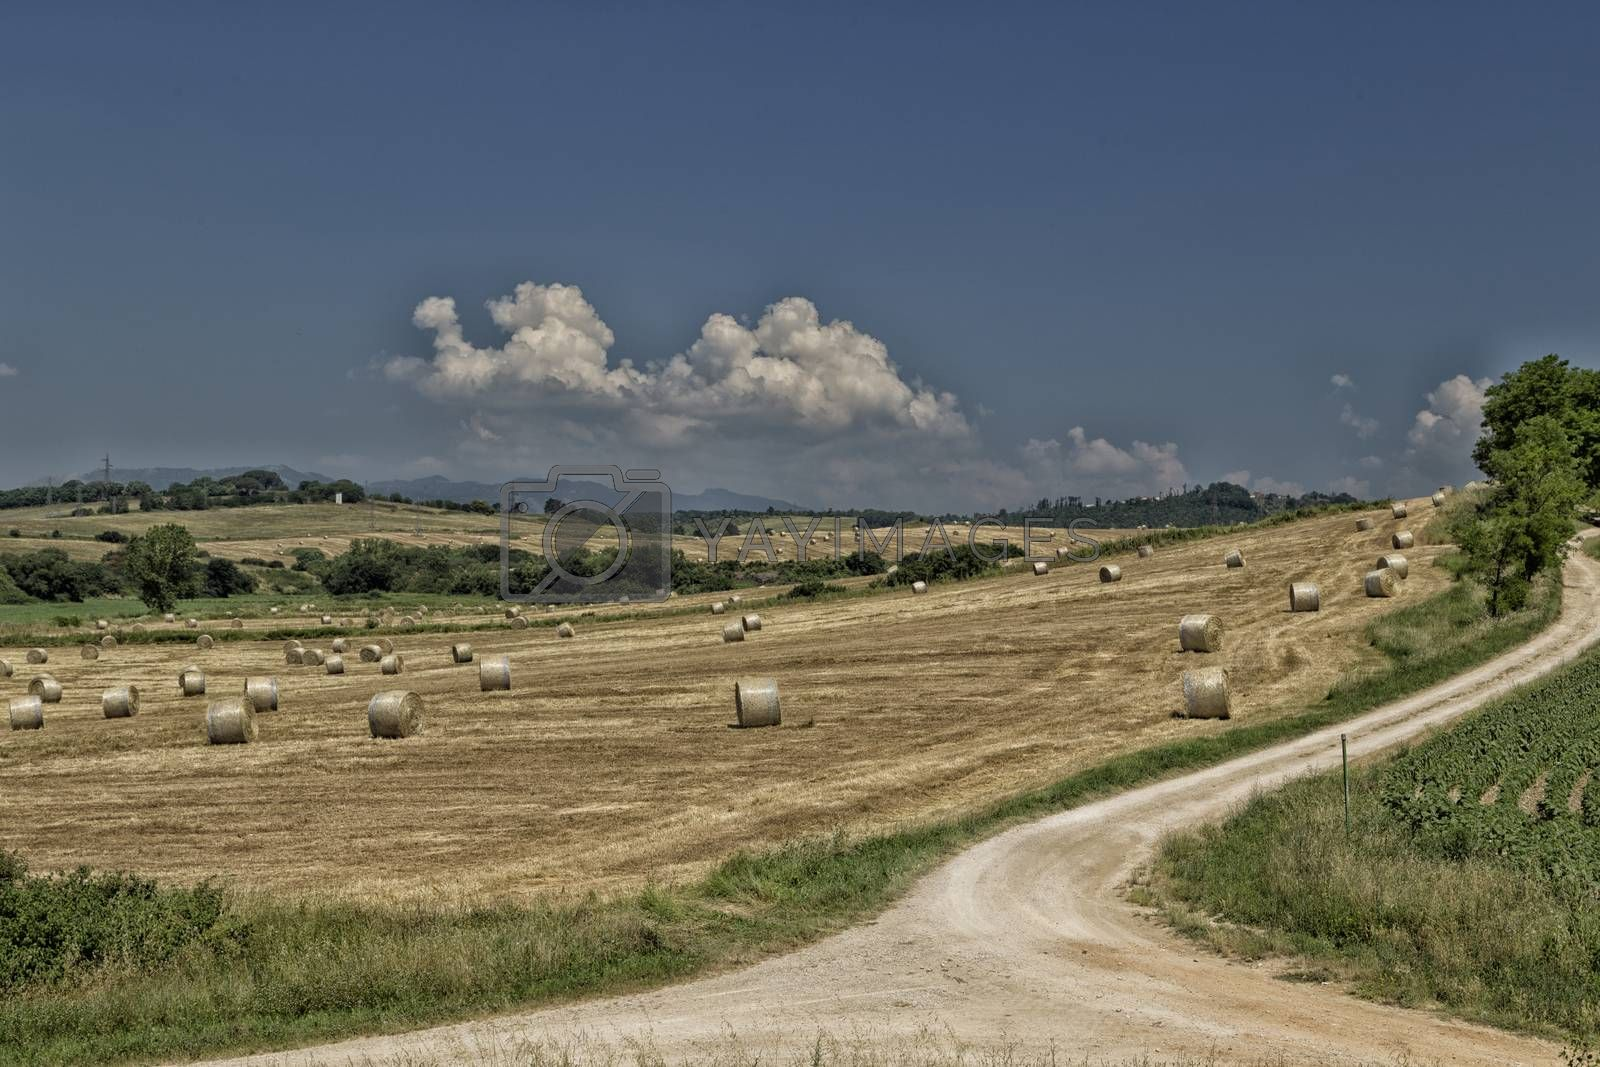 Field of hay bales in central Italy